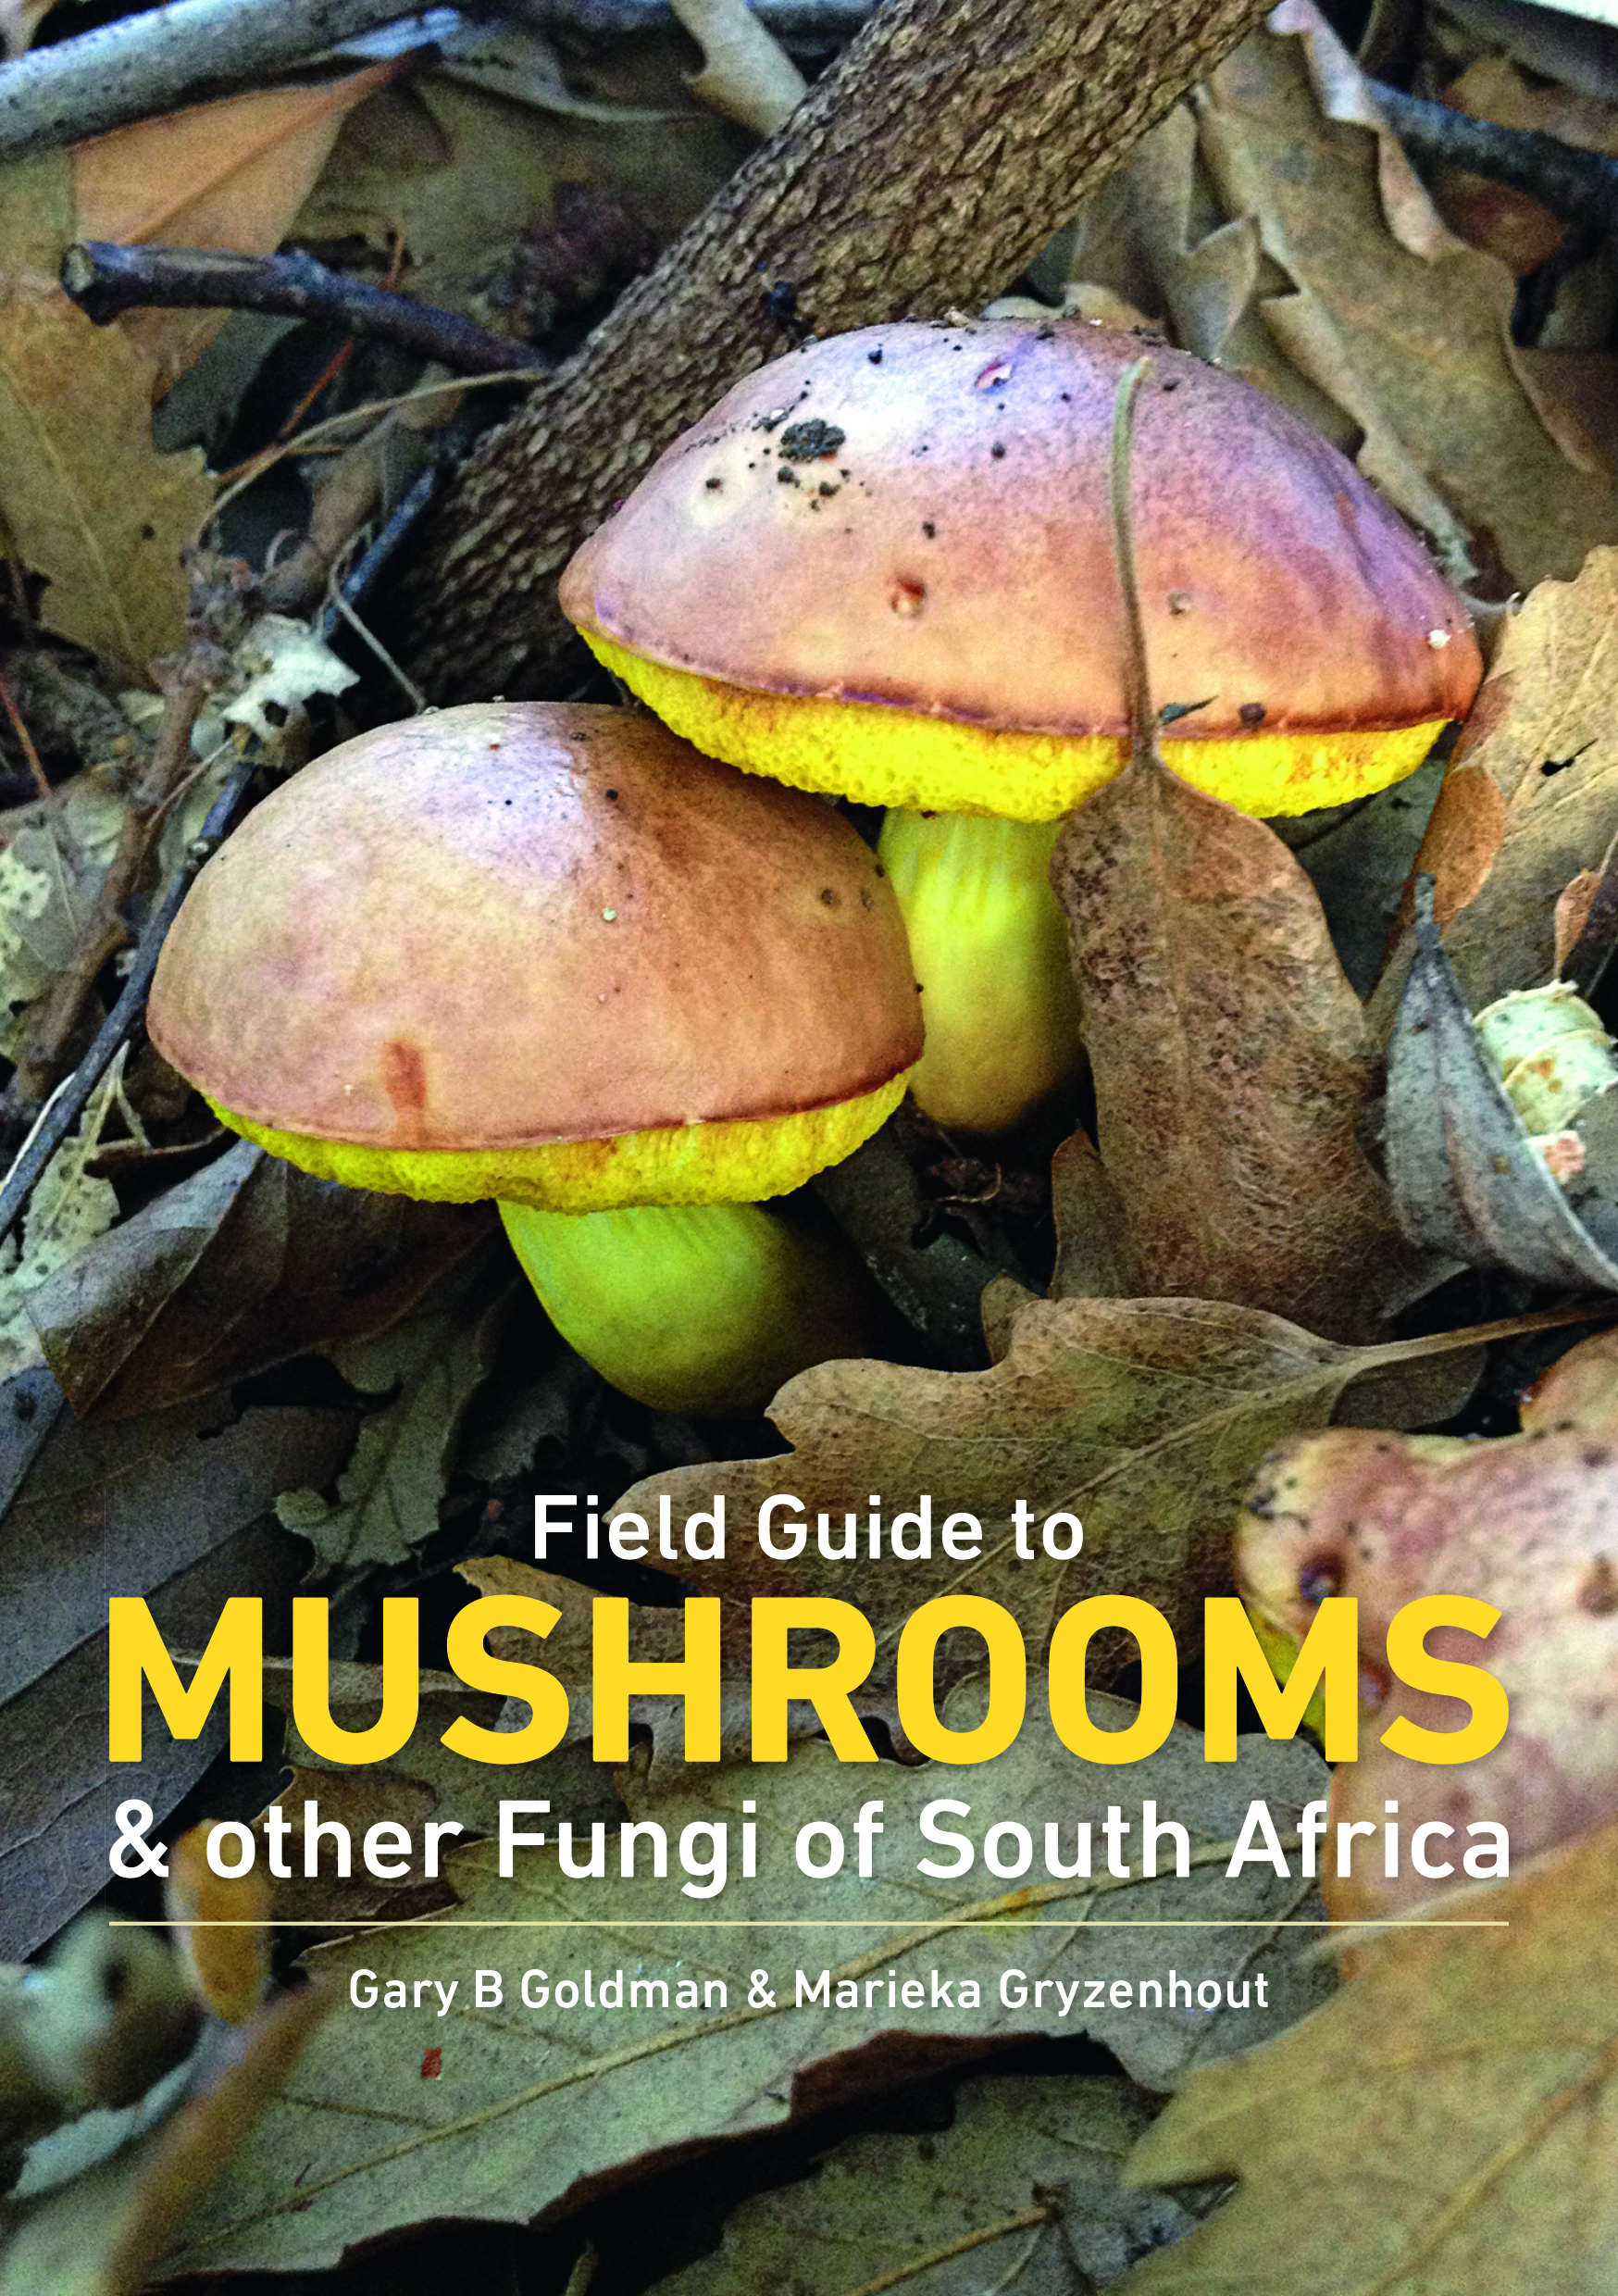 Field Guide to Mushrooms & Other Fungi of SA